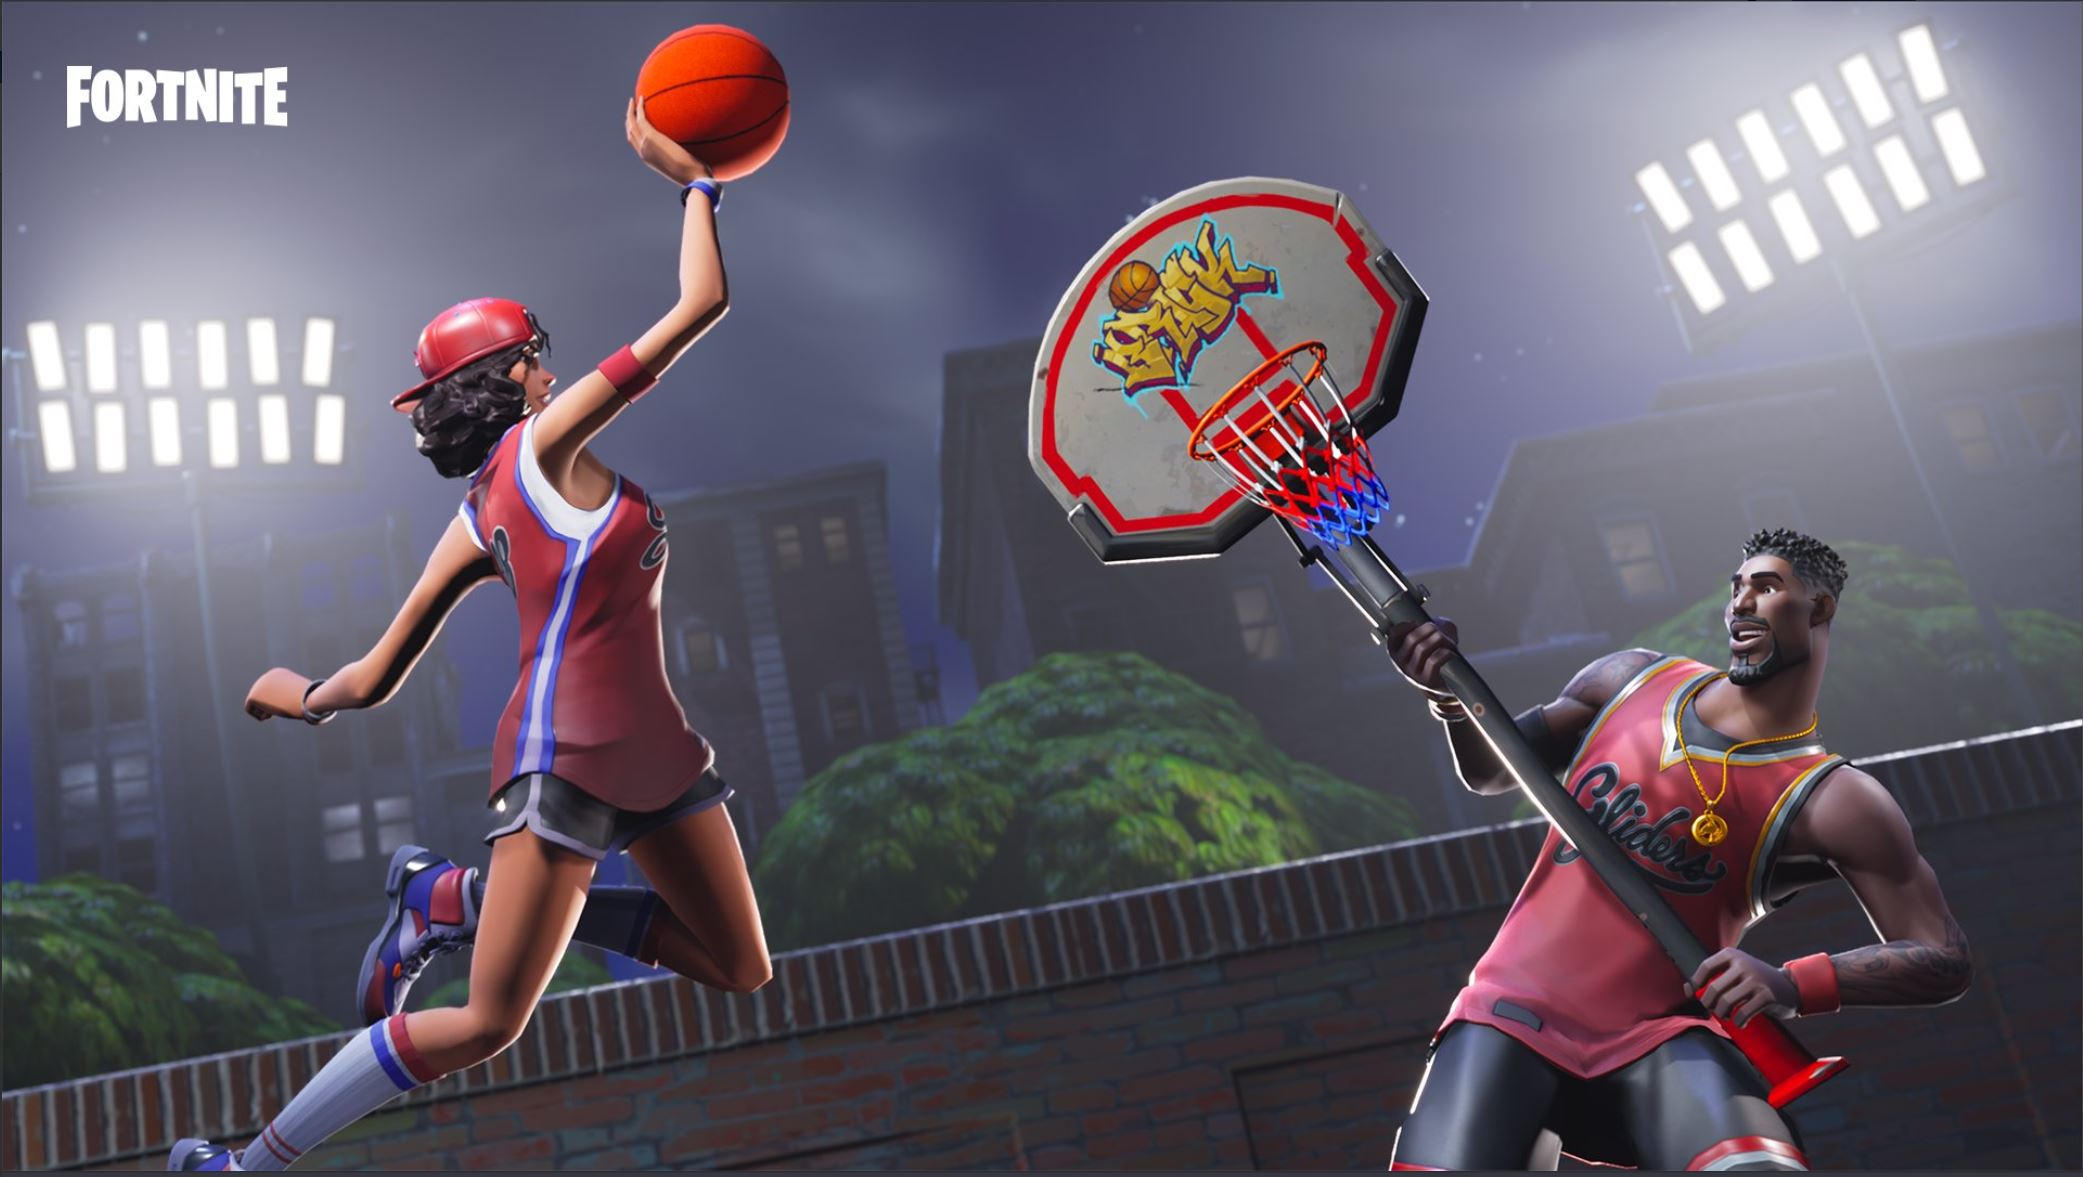 Fortnite-Basketball